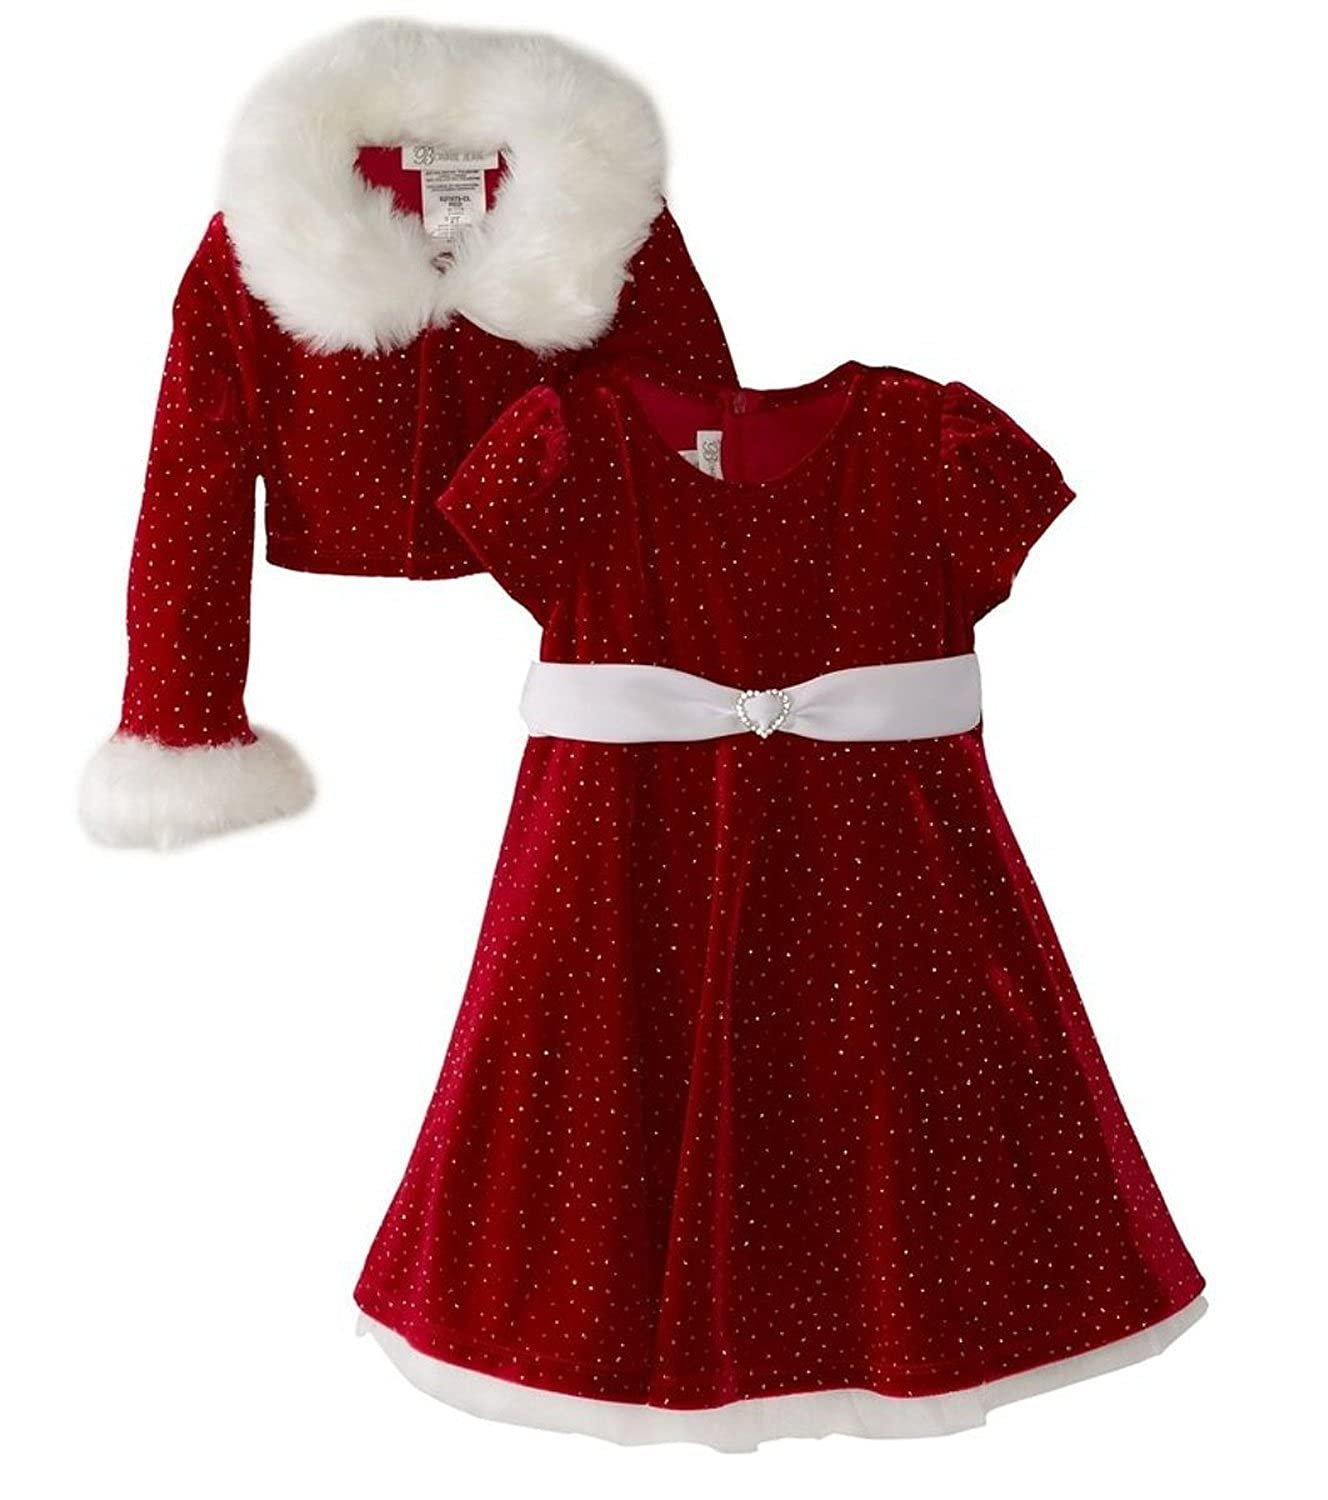 amazoncom bonnie jean girls christmas dress velvet sparkle dress with jacket clothing - Girl Christmas Dresses